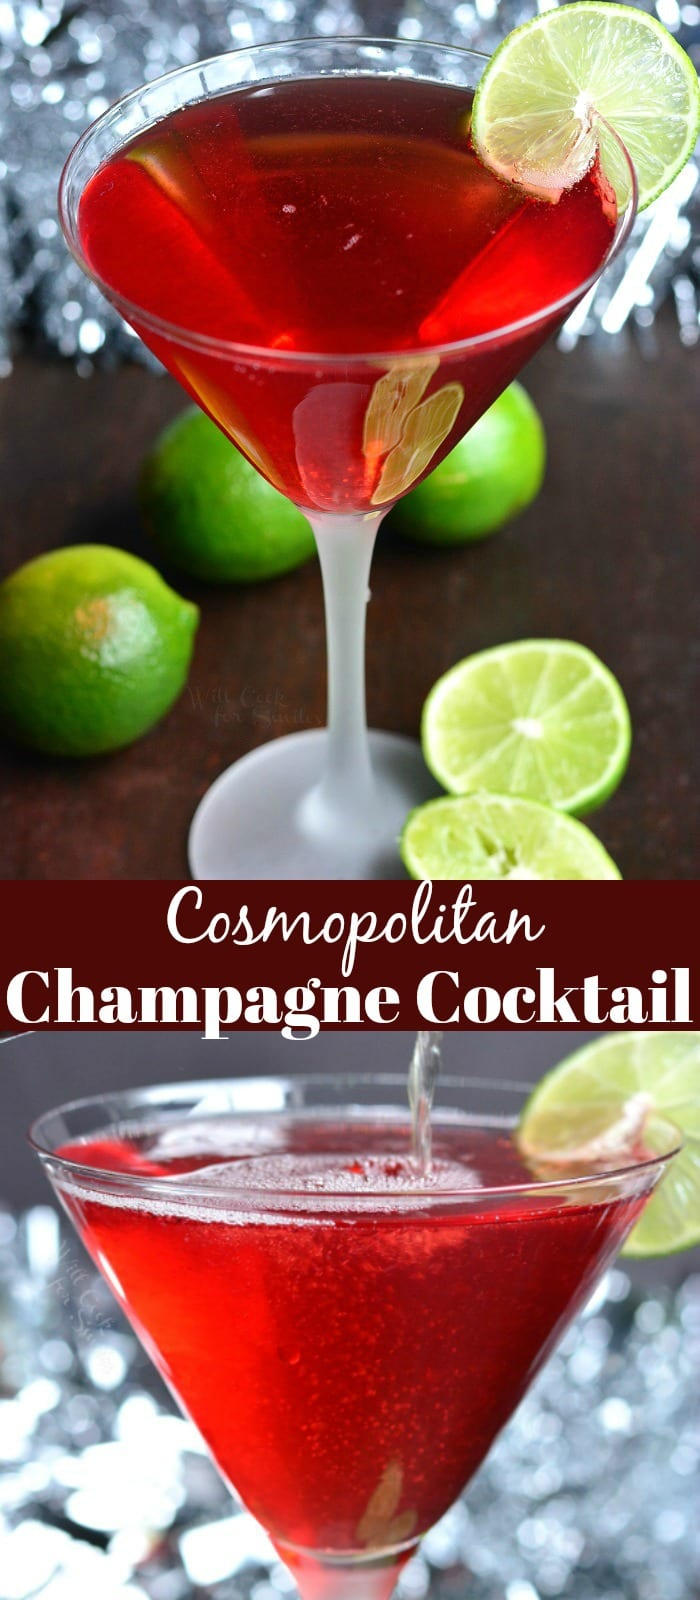 Cosmopolitan Champagne Cocktail. Perfect cocktail to serve at any party because of its pleasant mild flavor. It's made with cranberry juice, vodka, orange liqueur, lime juice, and champagne. #cocktail #drink #champagne #cosmopolitan